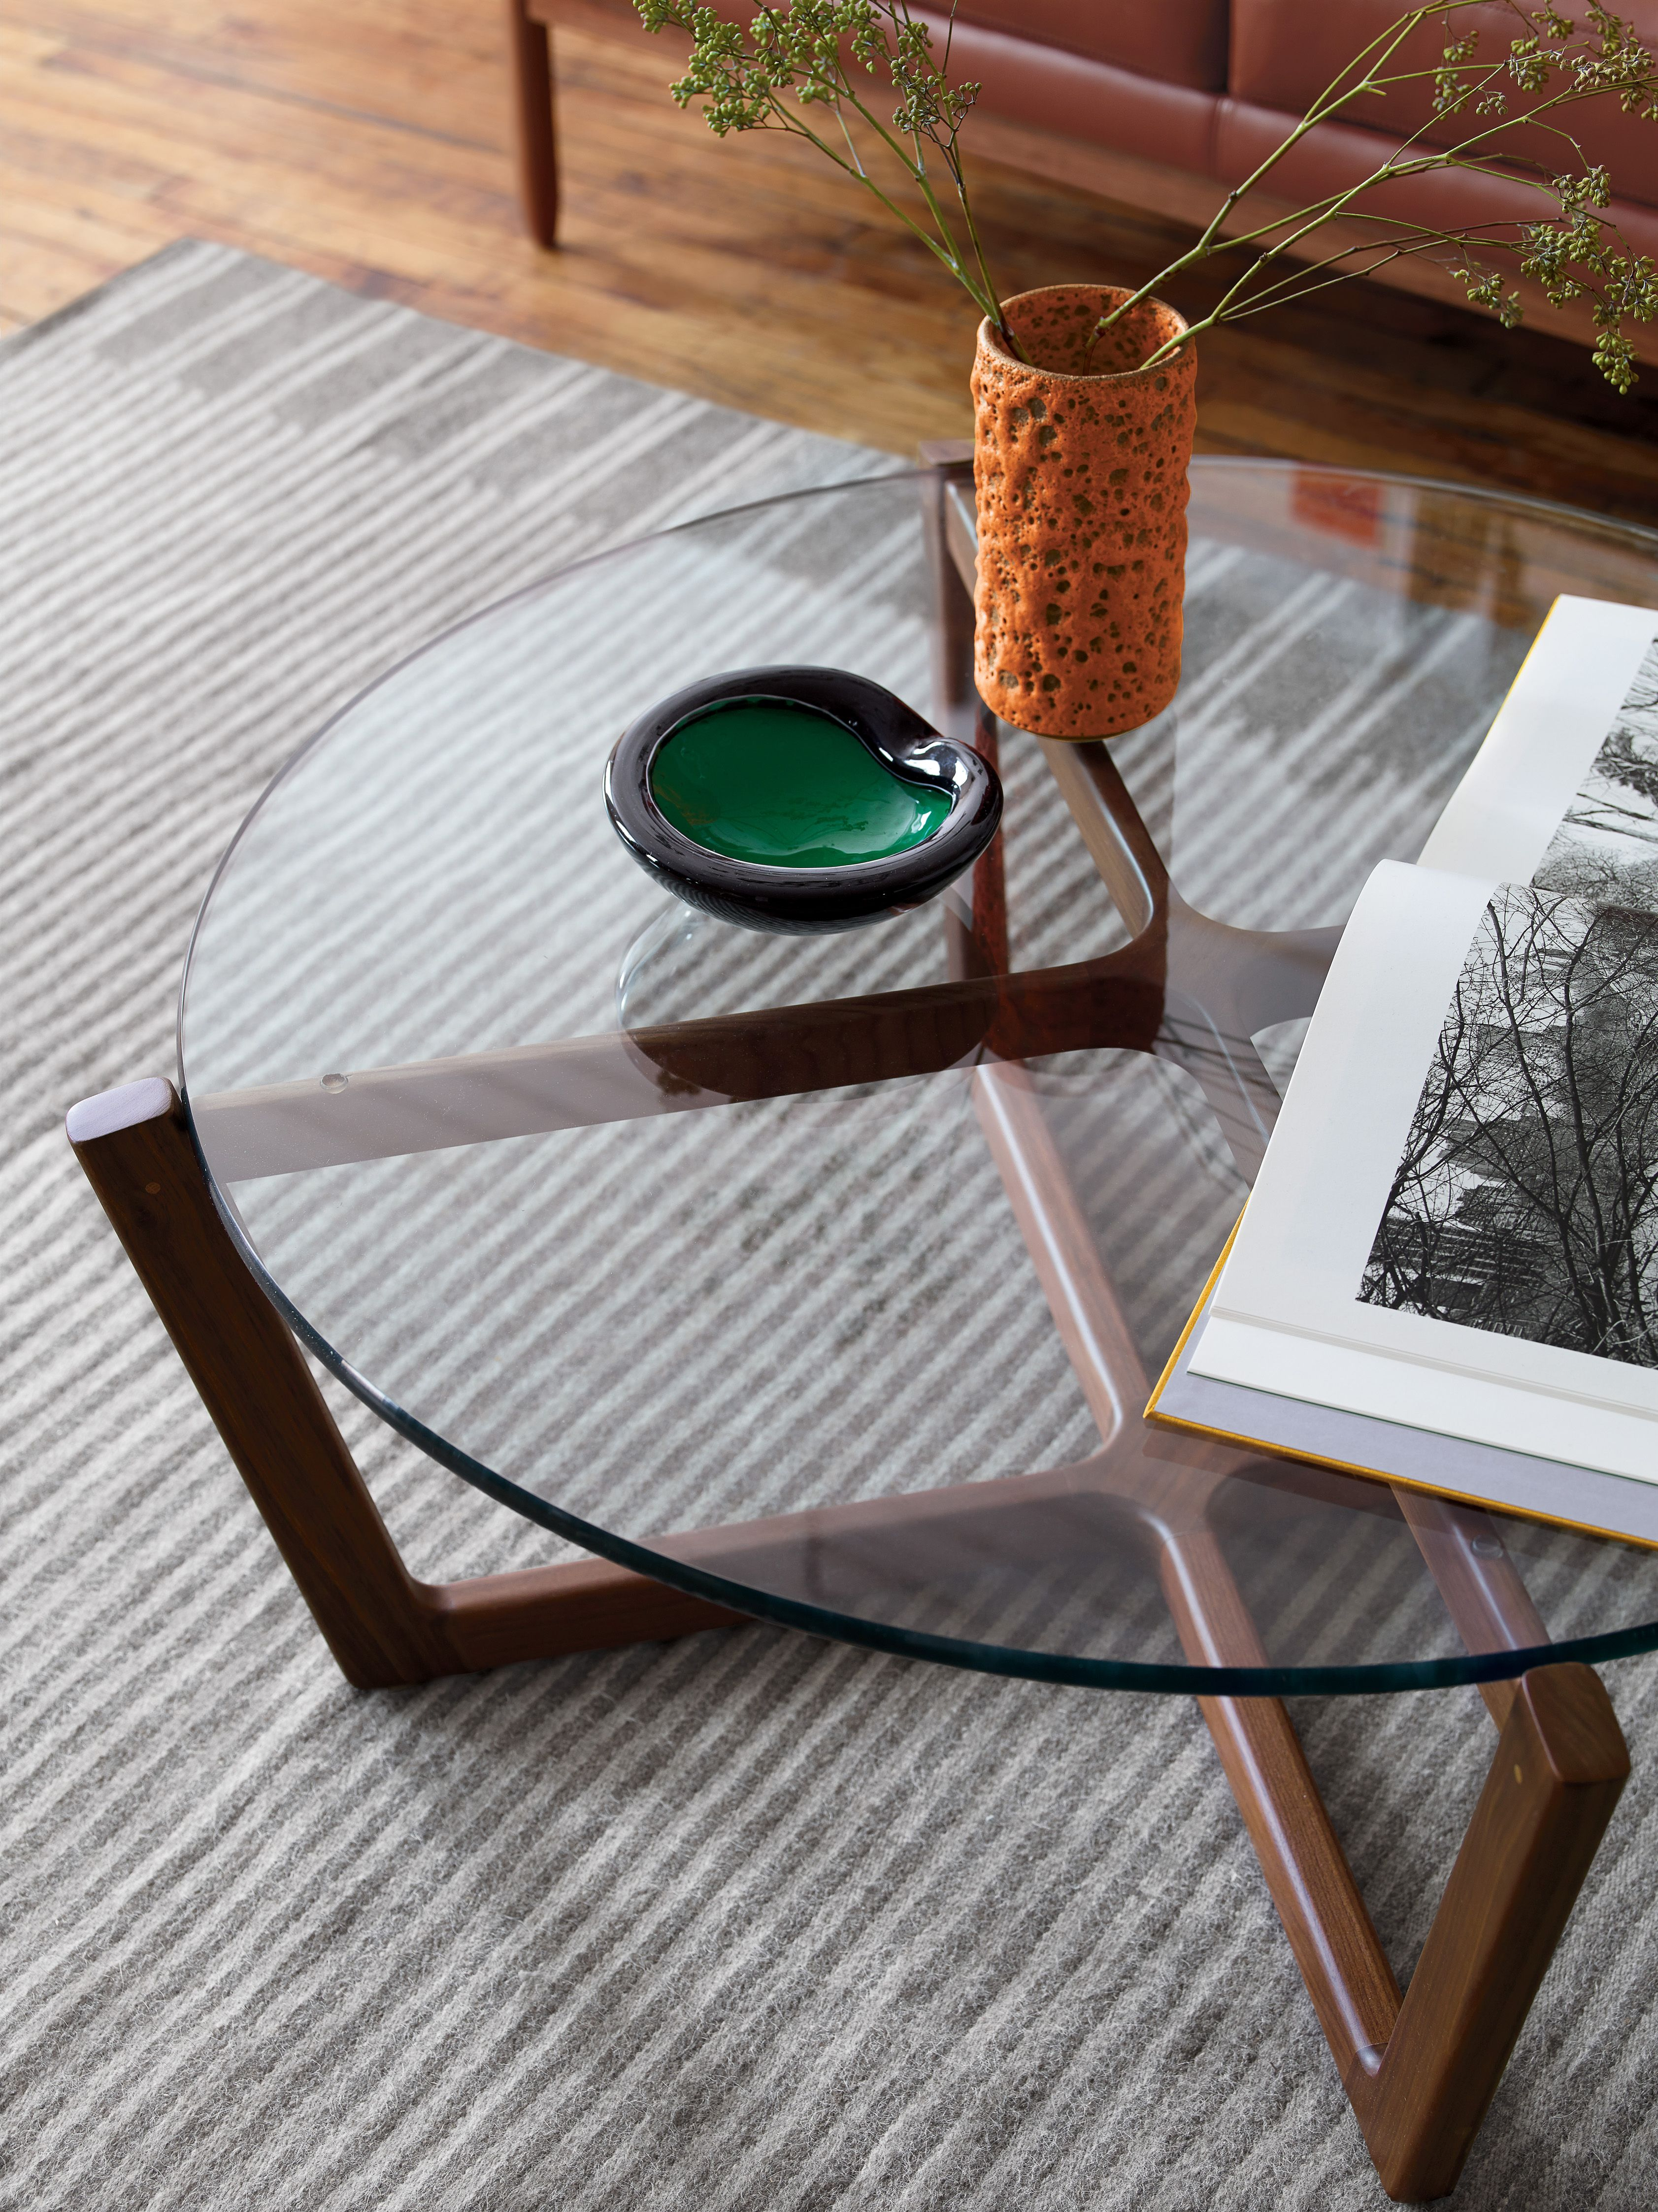 We Re Proud To Announce That The Atlas Table Received Interior Design Magazine S Top Honor For 2013 In The Coffee Table Coffee Table Design Coffee Table White [ jpg ]